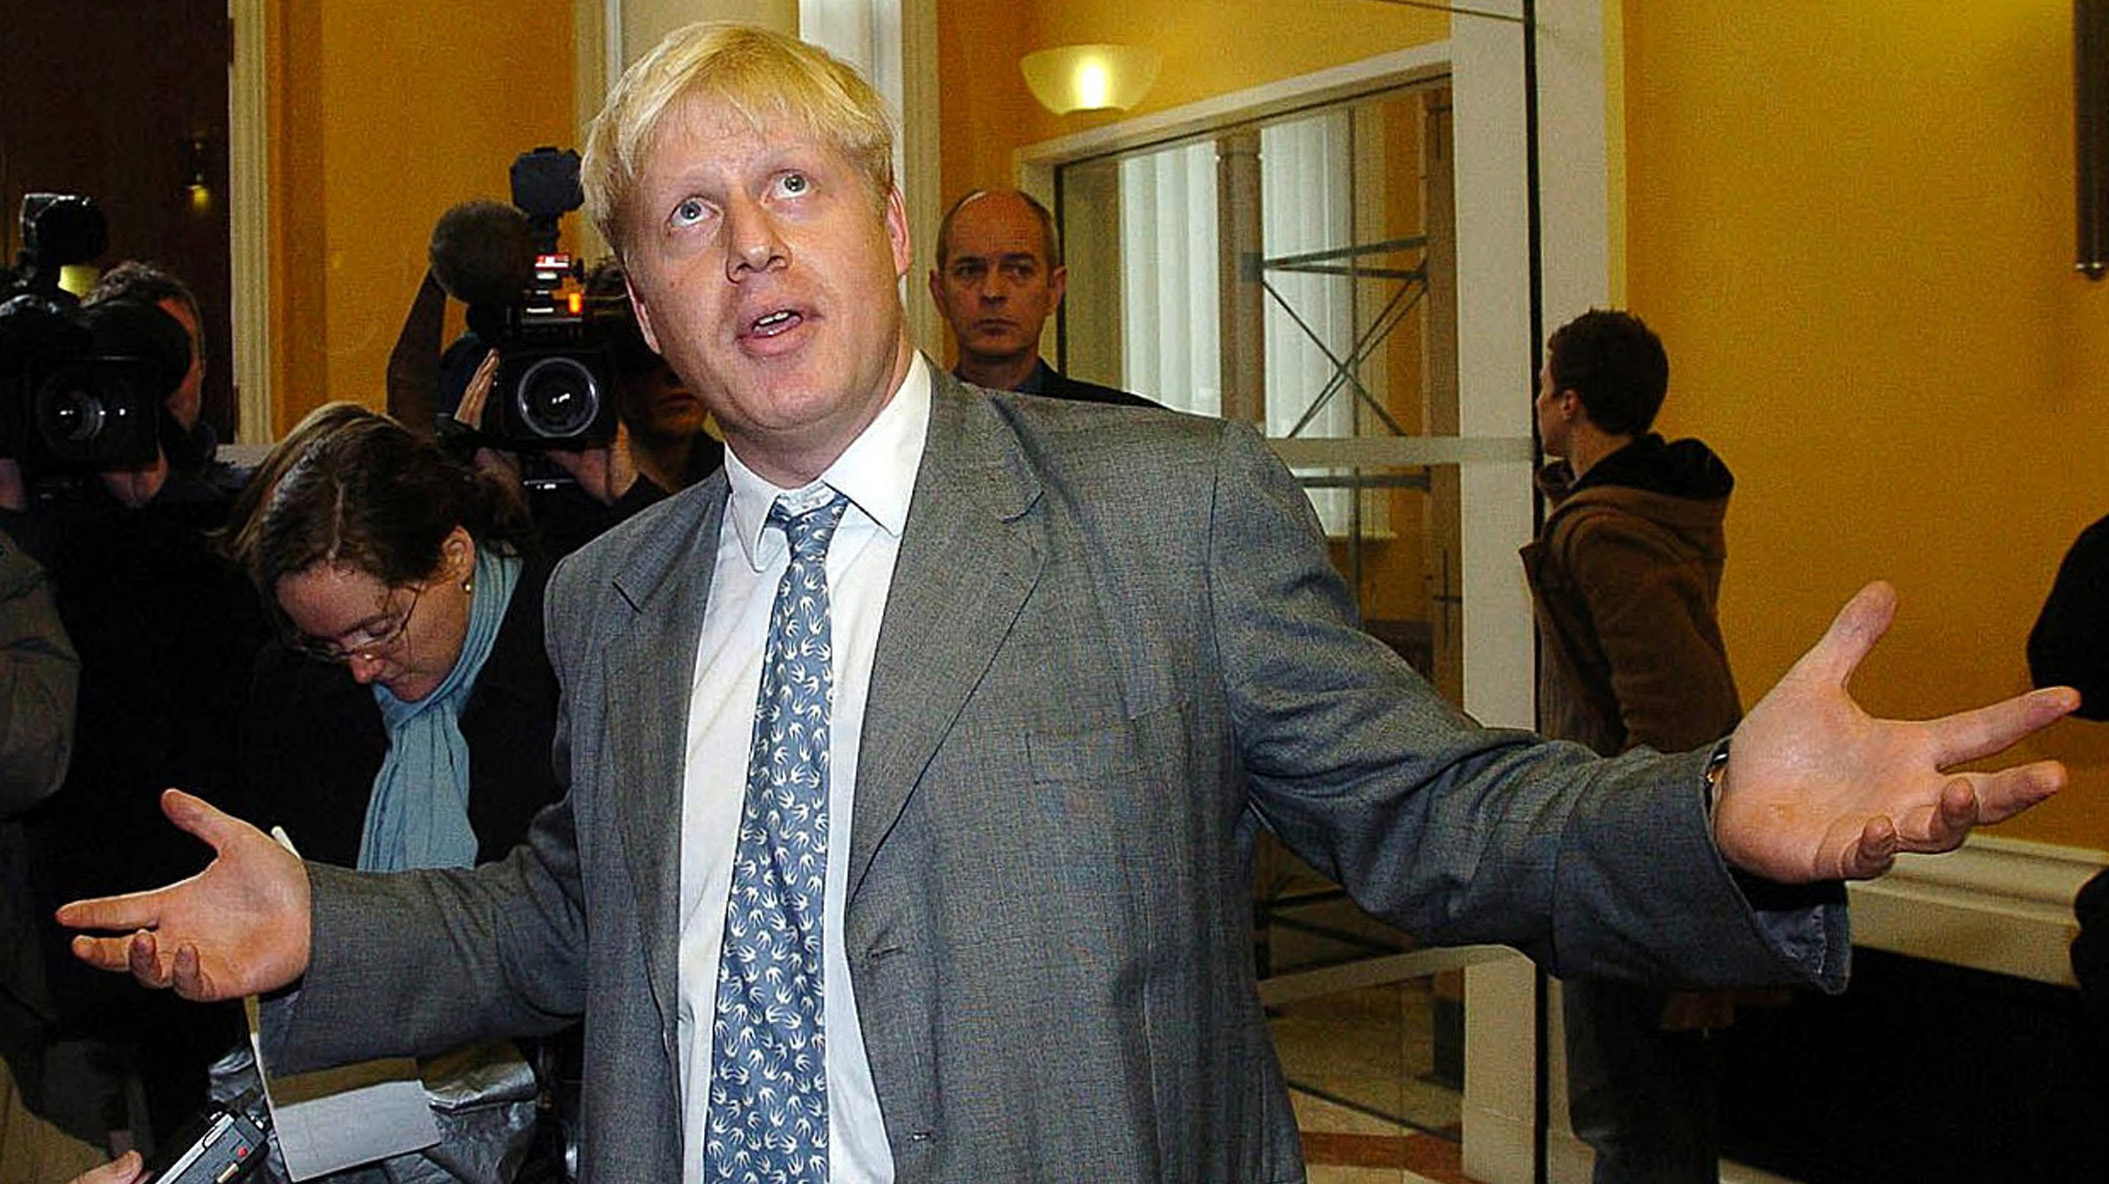 Boris Johnson visits Liverpool in 2004 (Reuters)